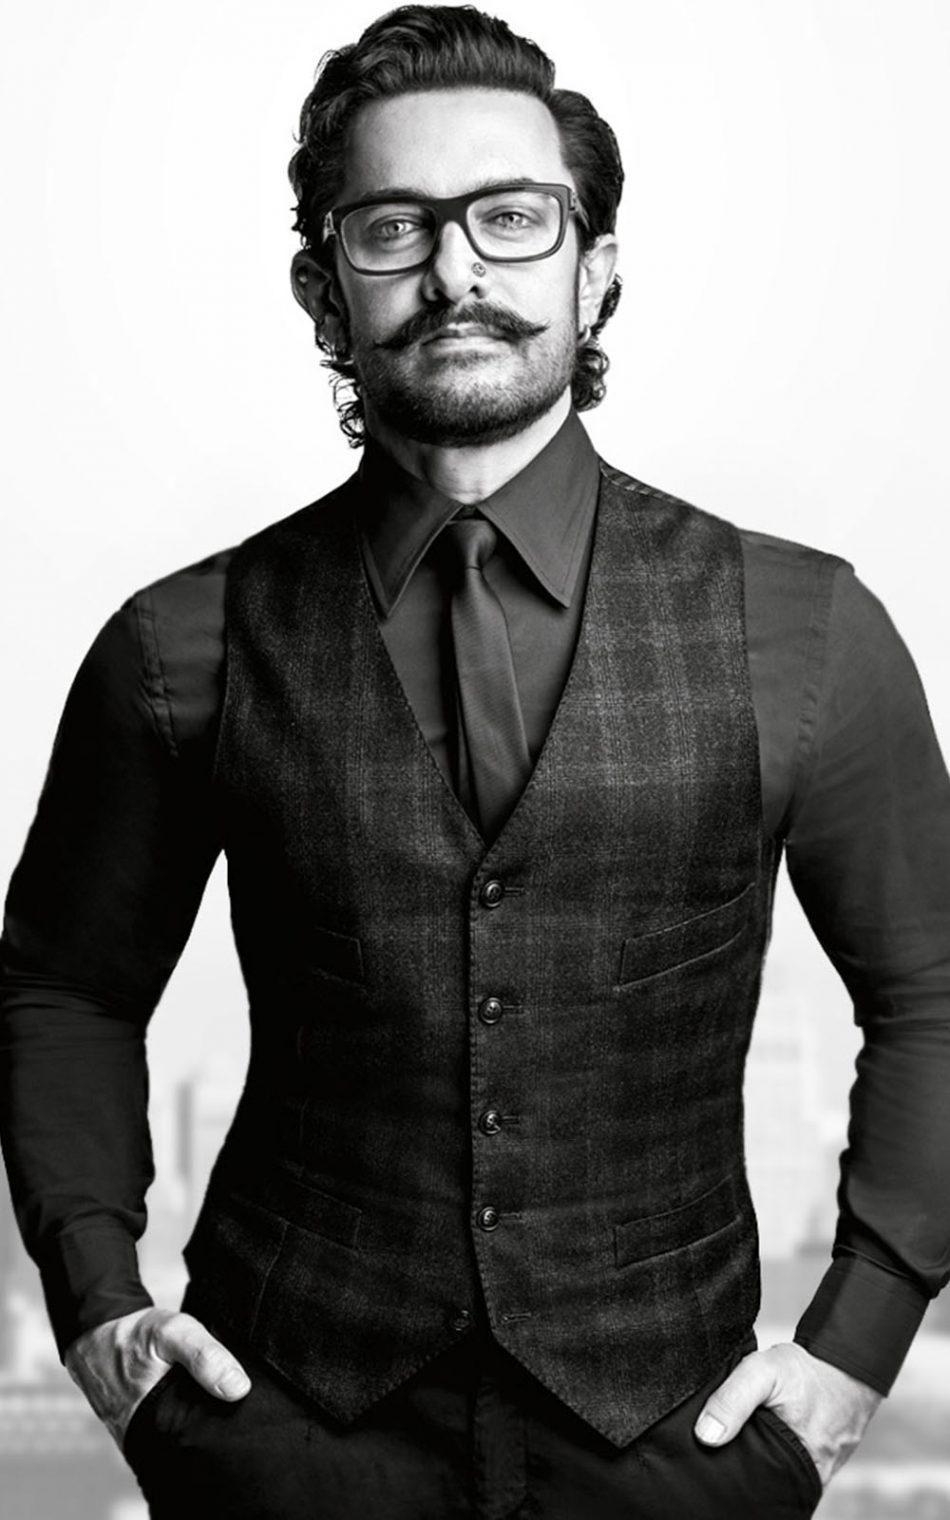 Aamir khan wallpapers hd pictures photos image for android apk download - Aamir khan hd wallpaper ...